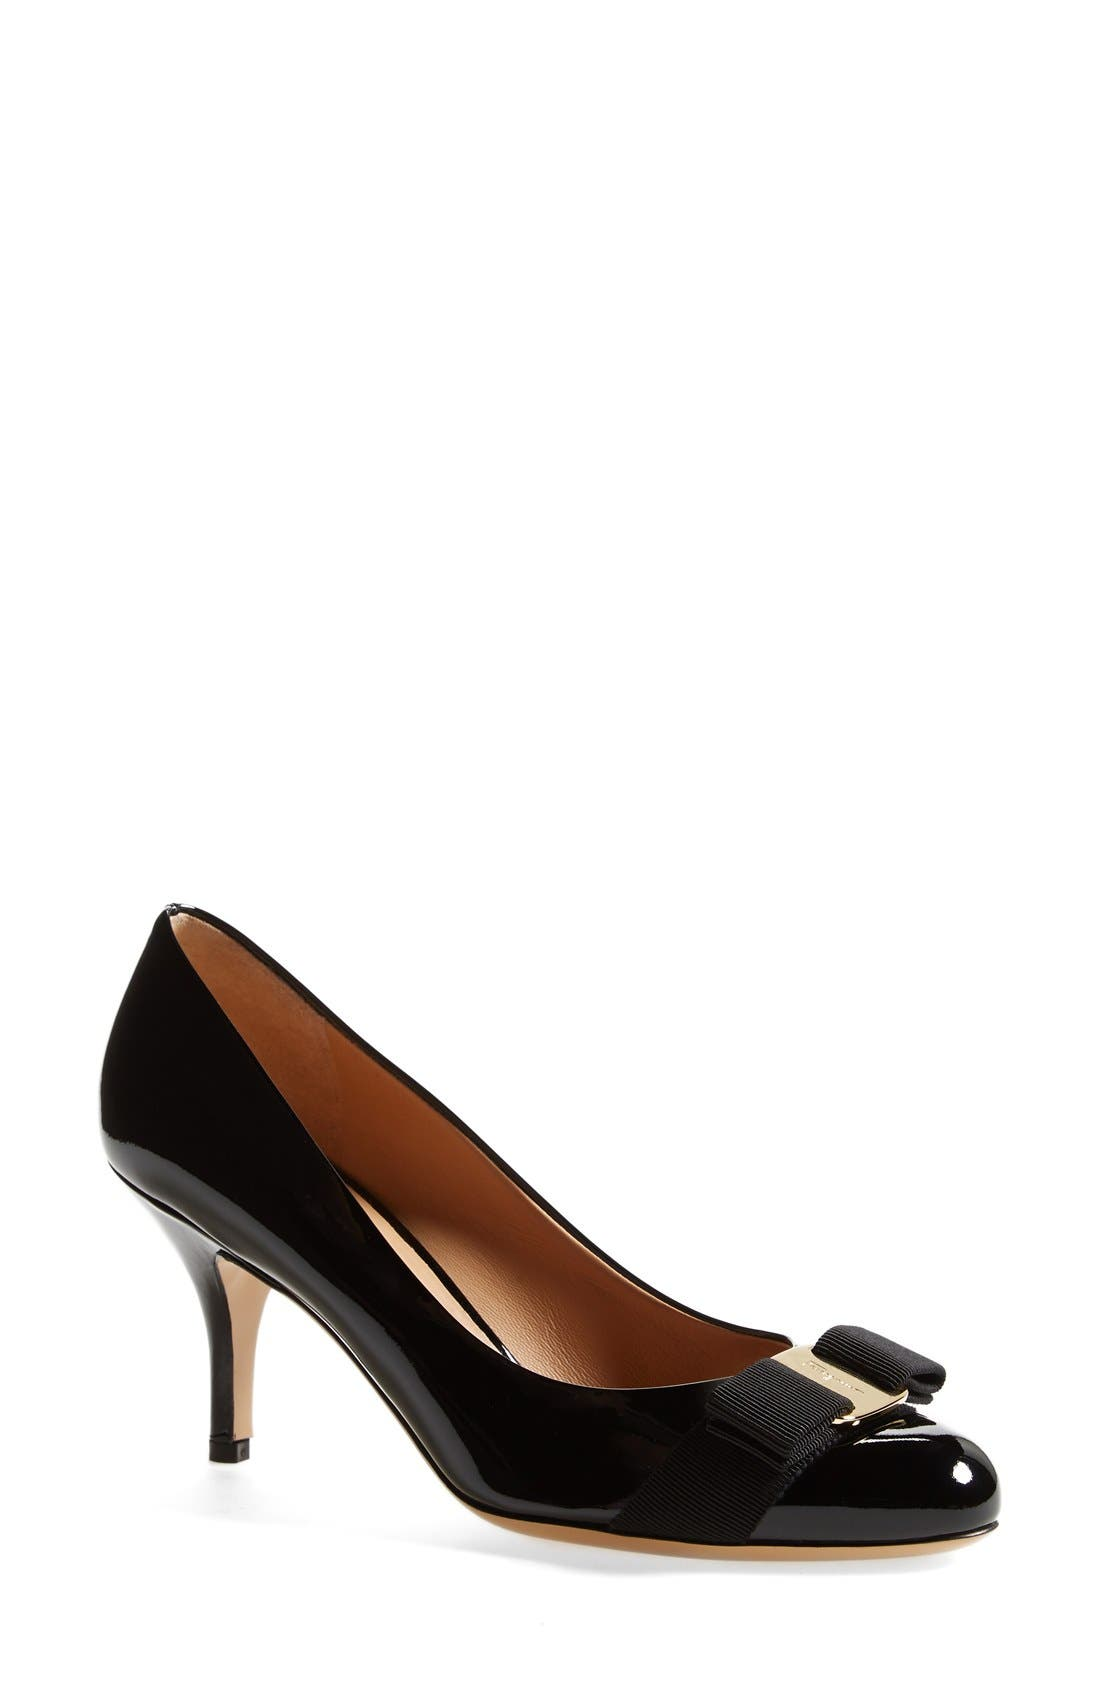 Main Image - Salvatore Ferragamo 'Carla' Patent Leather Pump (Women)